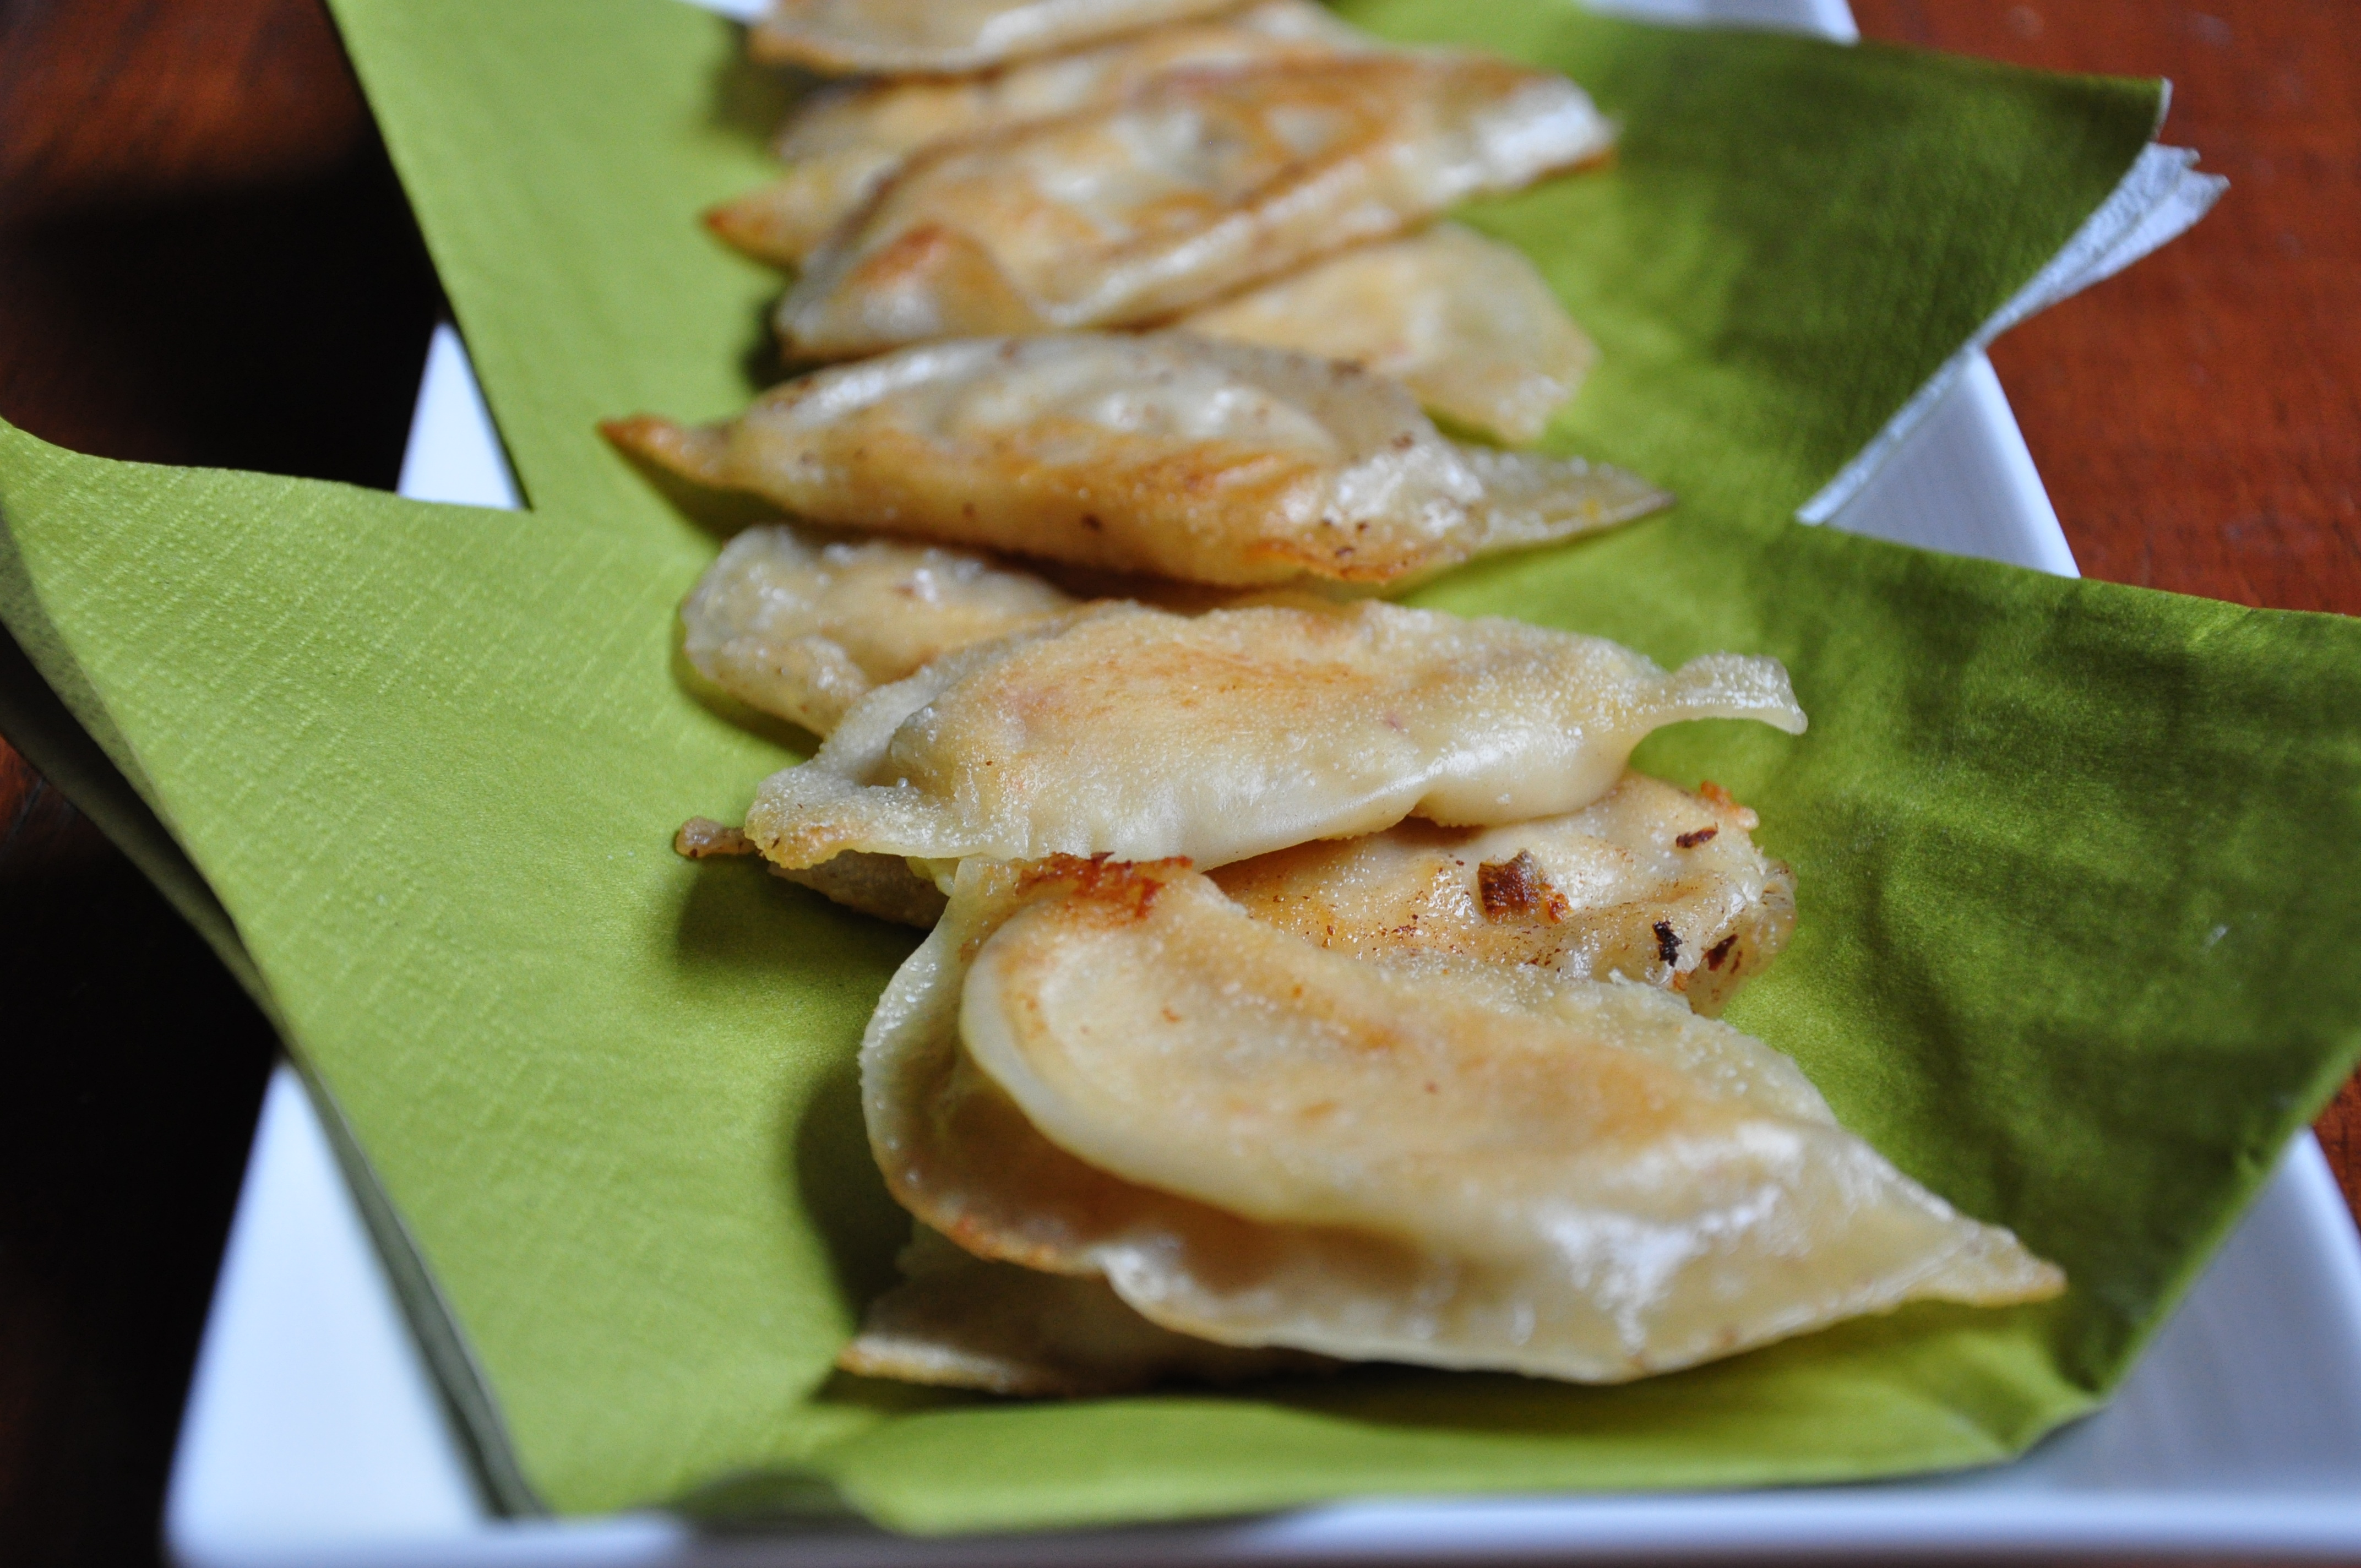 Spicy Cheese &amp; Artichoke Pot Stickers